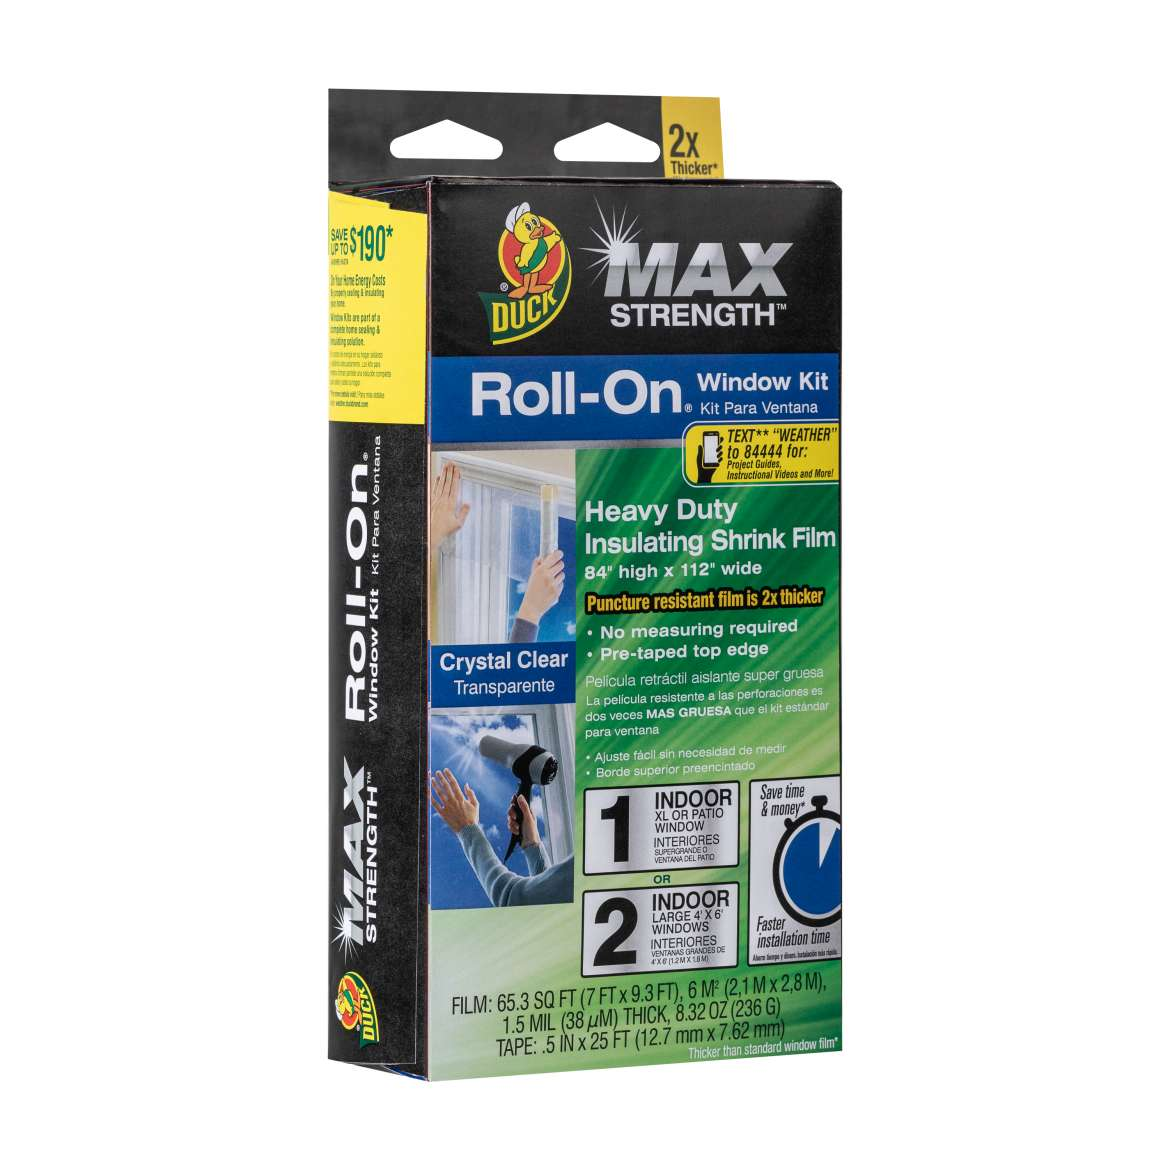 Duck Max Strength™ Roll-On® Window Insulation Kits